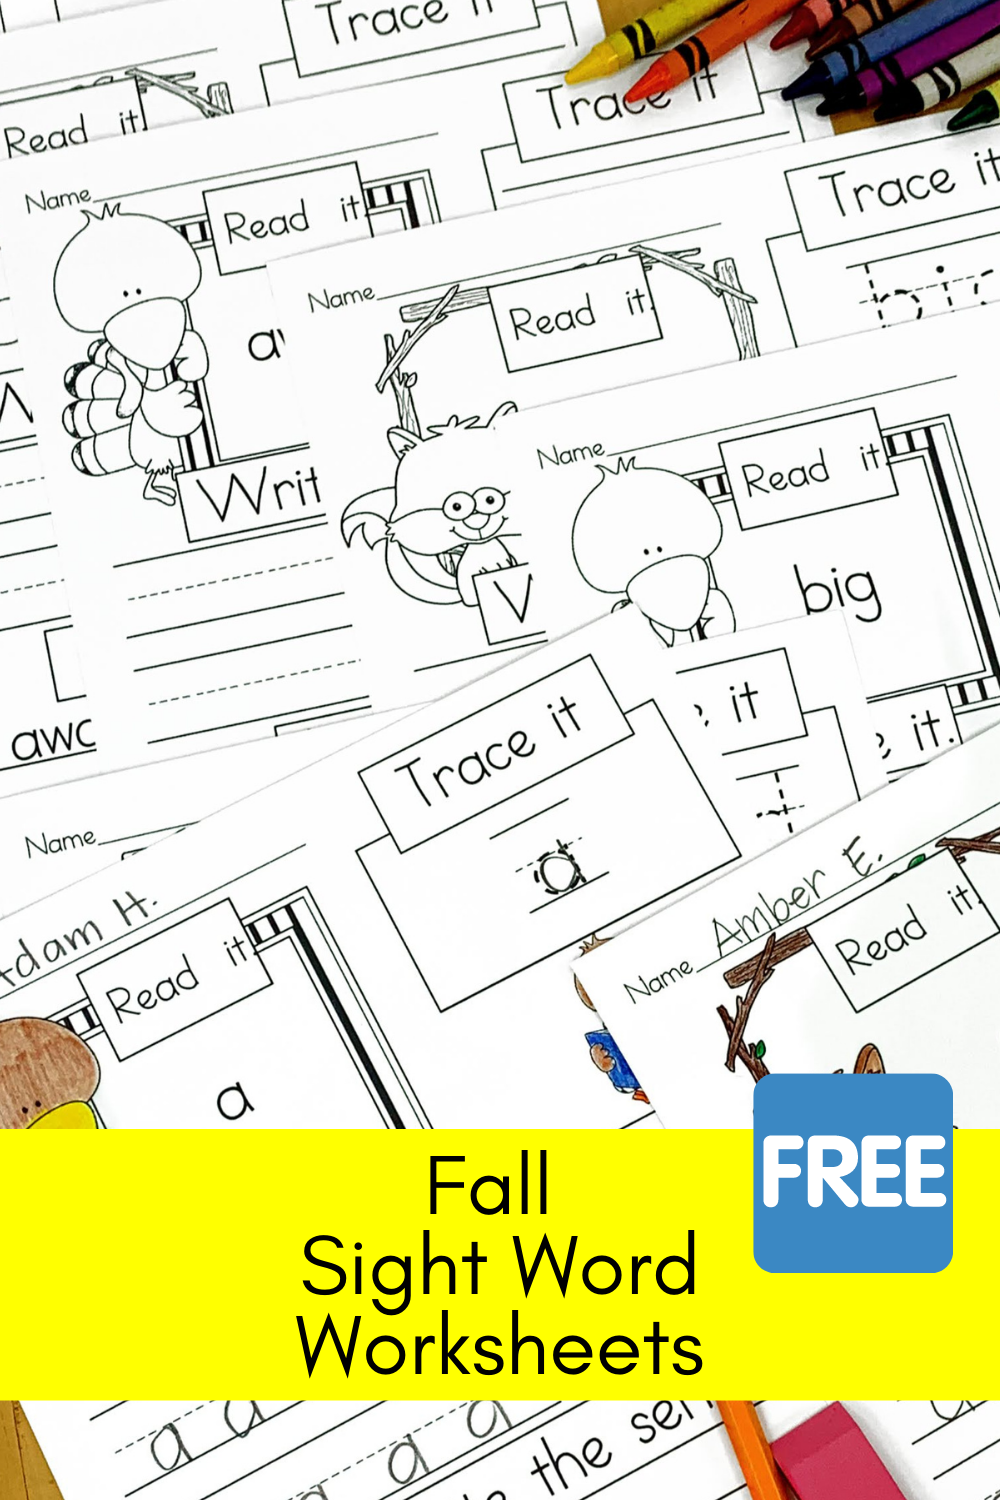 Fall Sight Word Worksheets